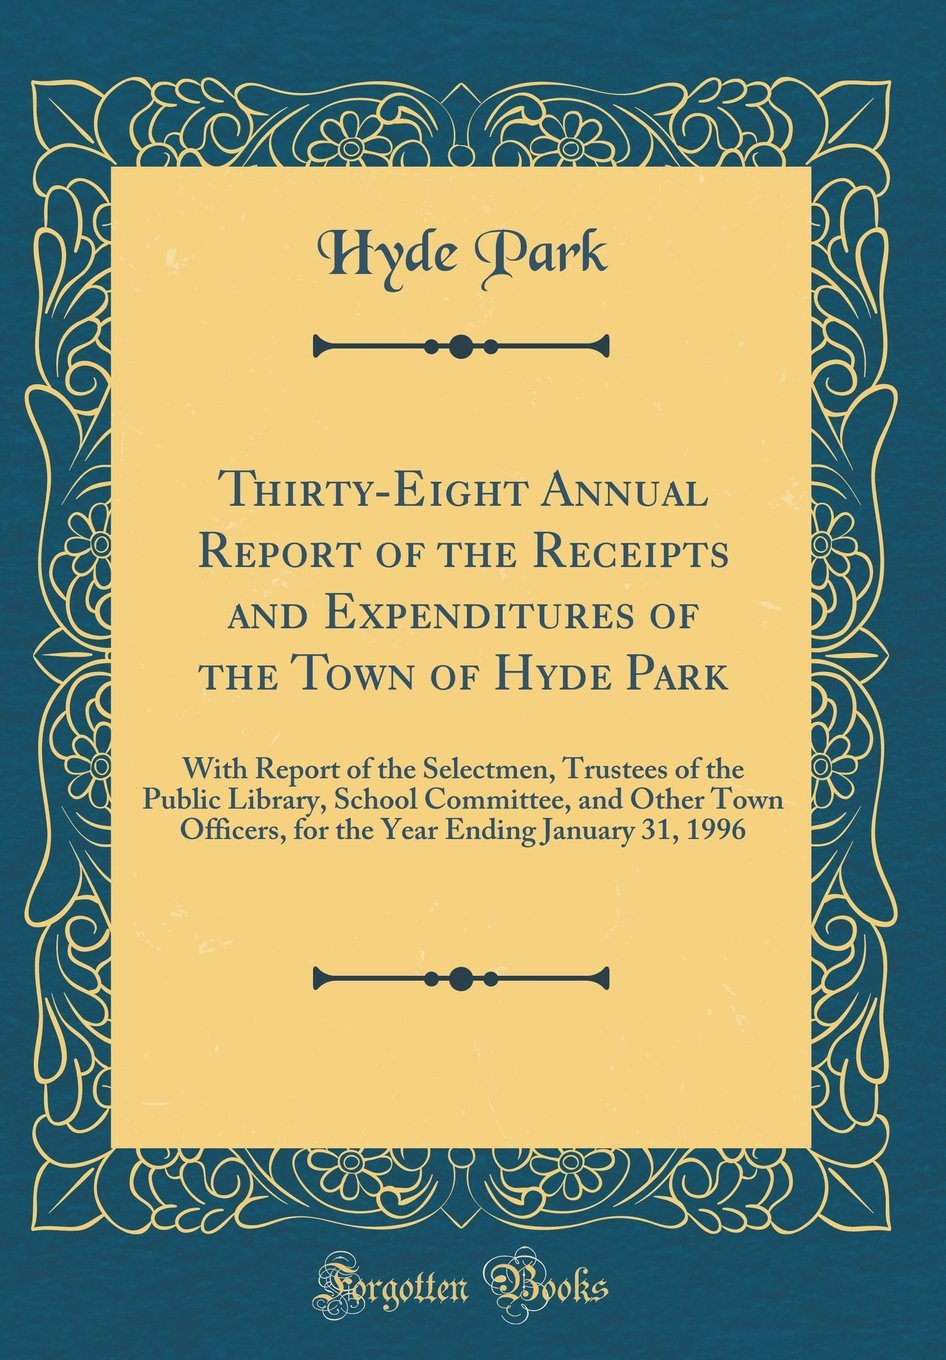 Read Online Thirty-Eight Annual Report of the Receipts and Expenditures of the Town of Hyde Park: With Report of the Selectmen, Trustees of the Public Library, ... Ending January 31, 1996 (Classic Reprint) PDF